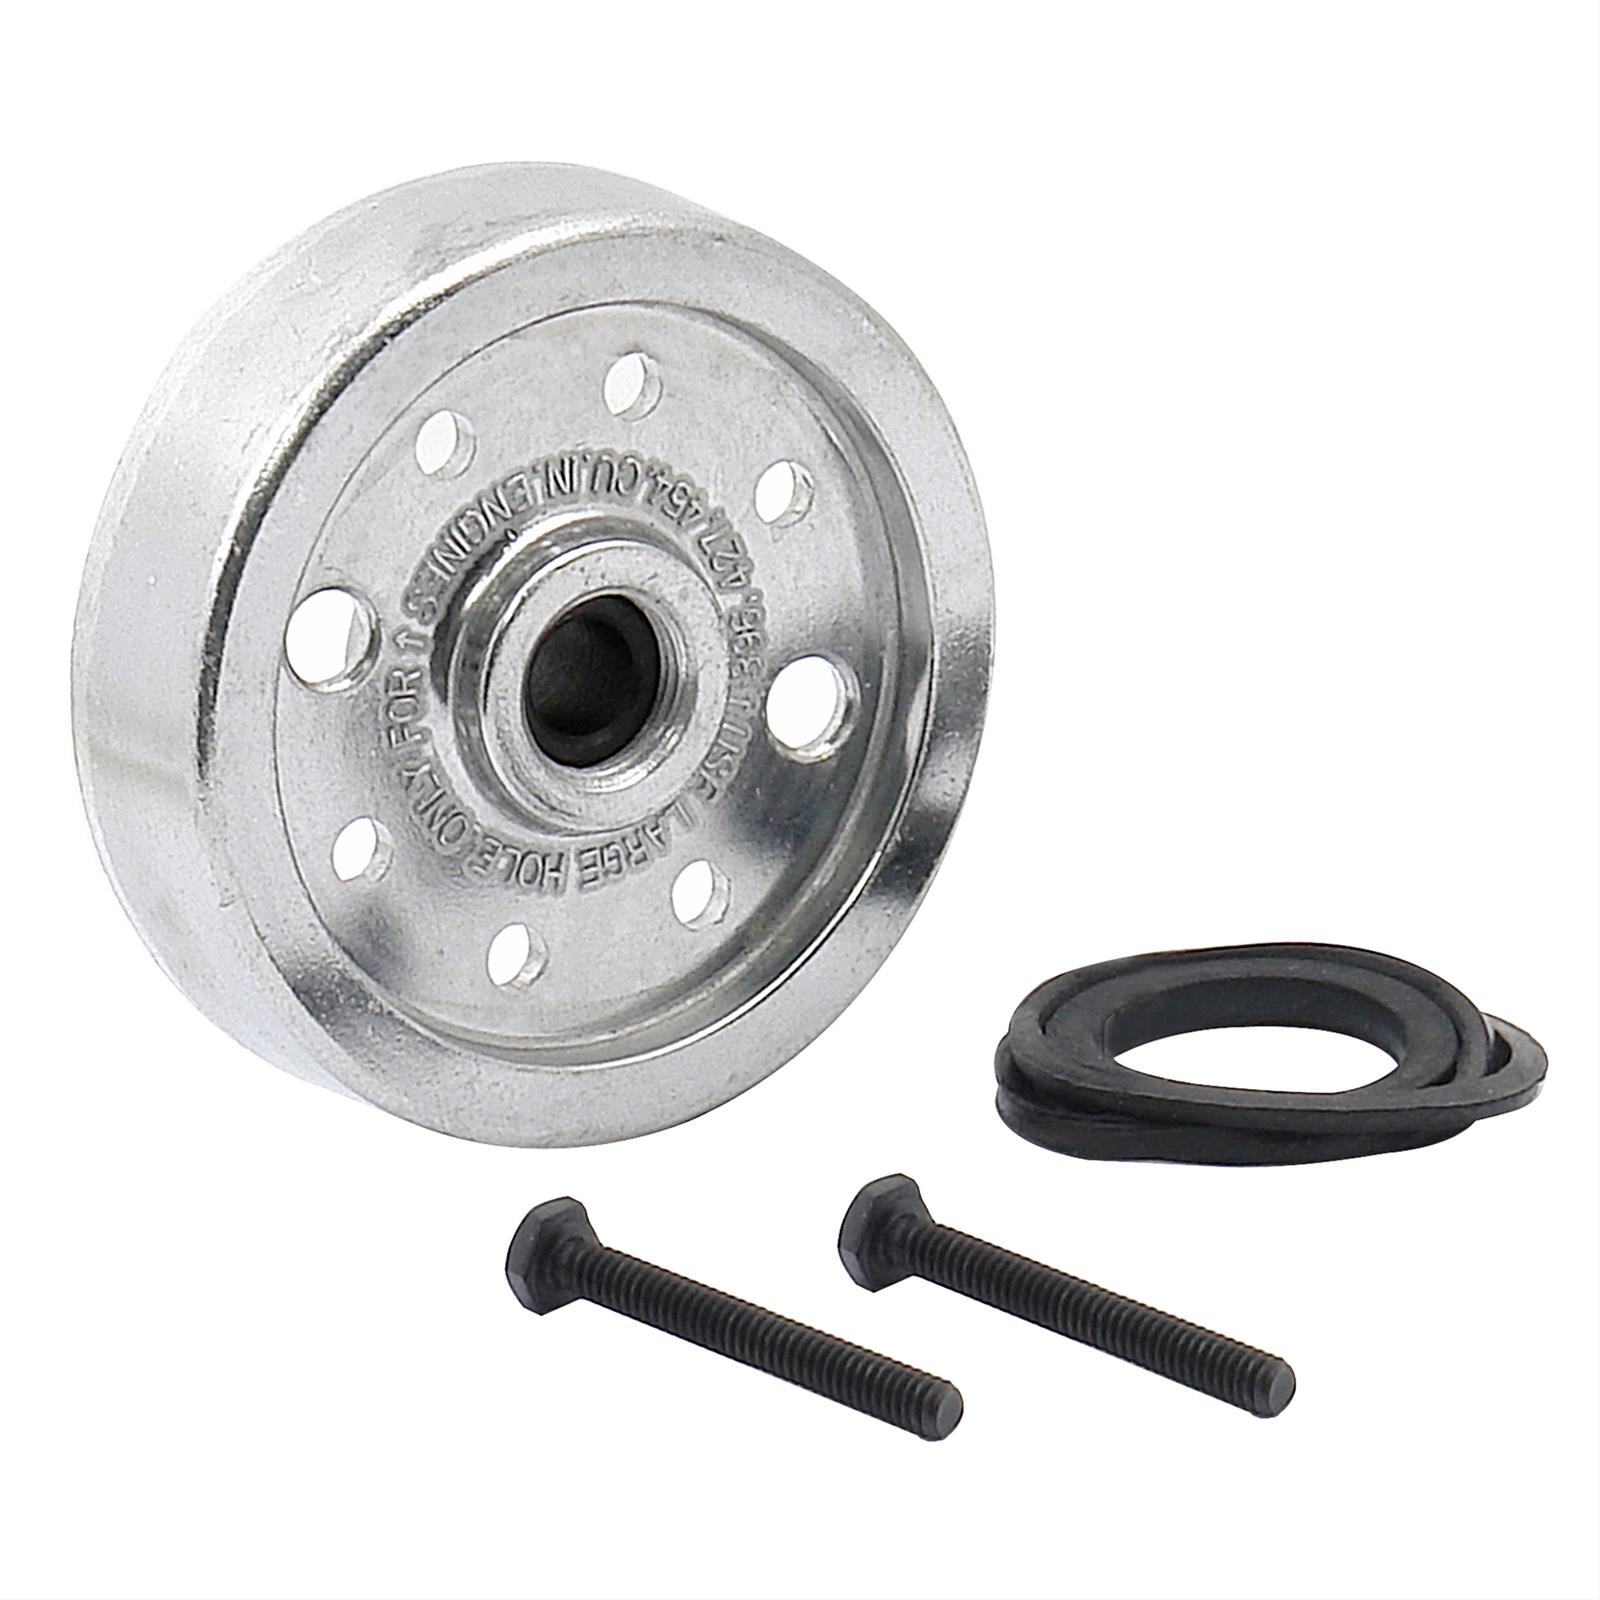 Mr. Gasket Oil Filter Adapter Kits 1270 - Free Shipping on Orders Over $99  at Summit Racing